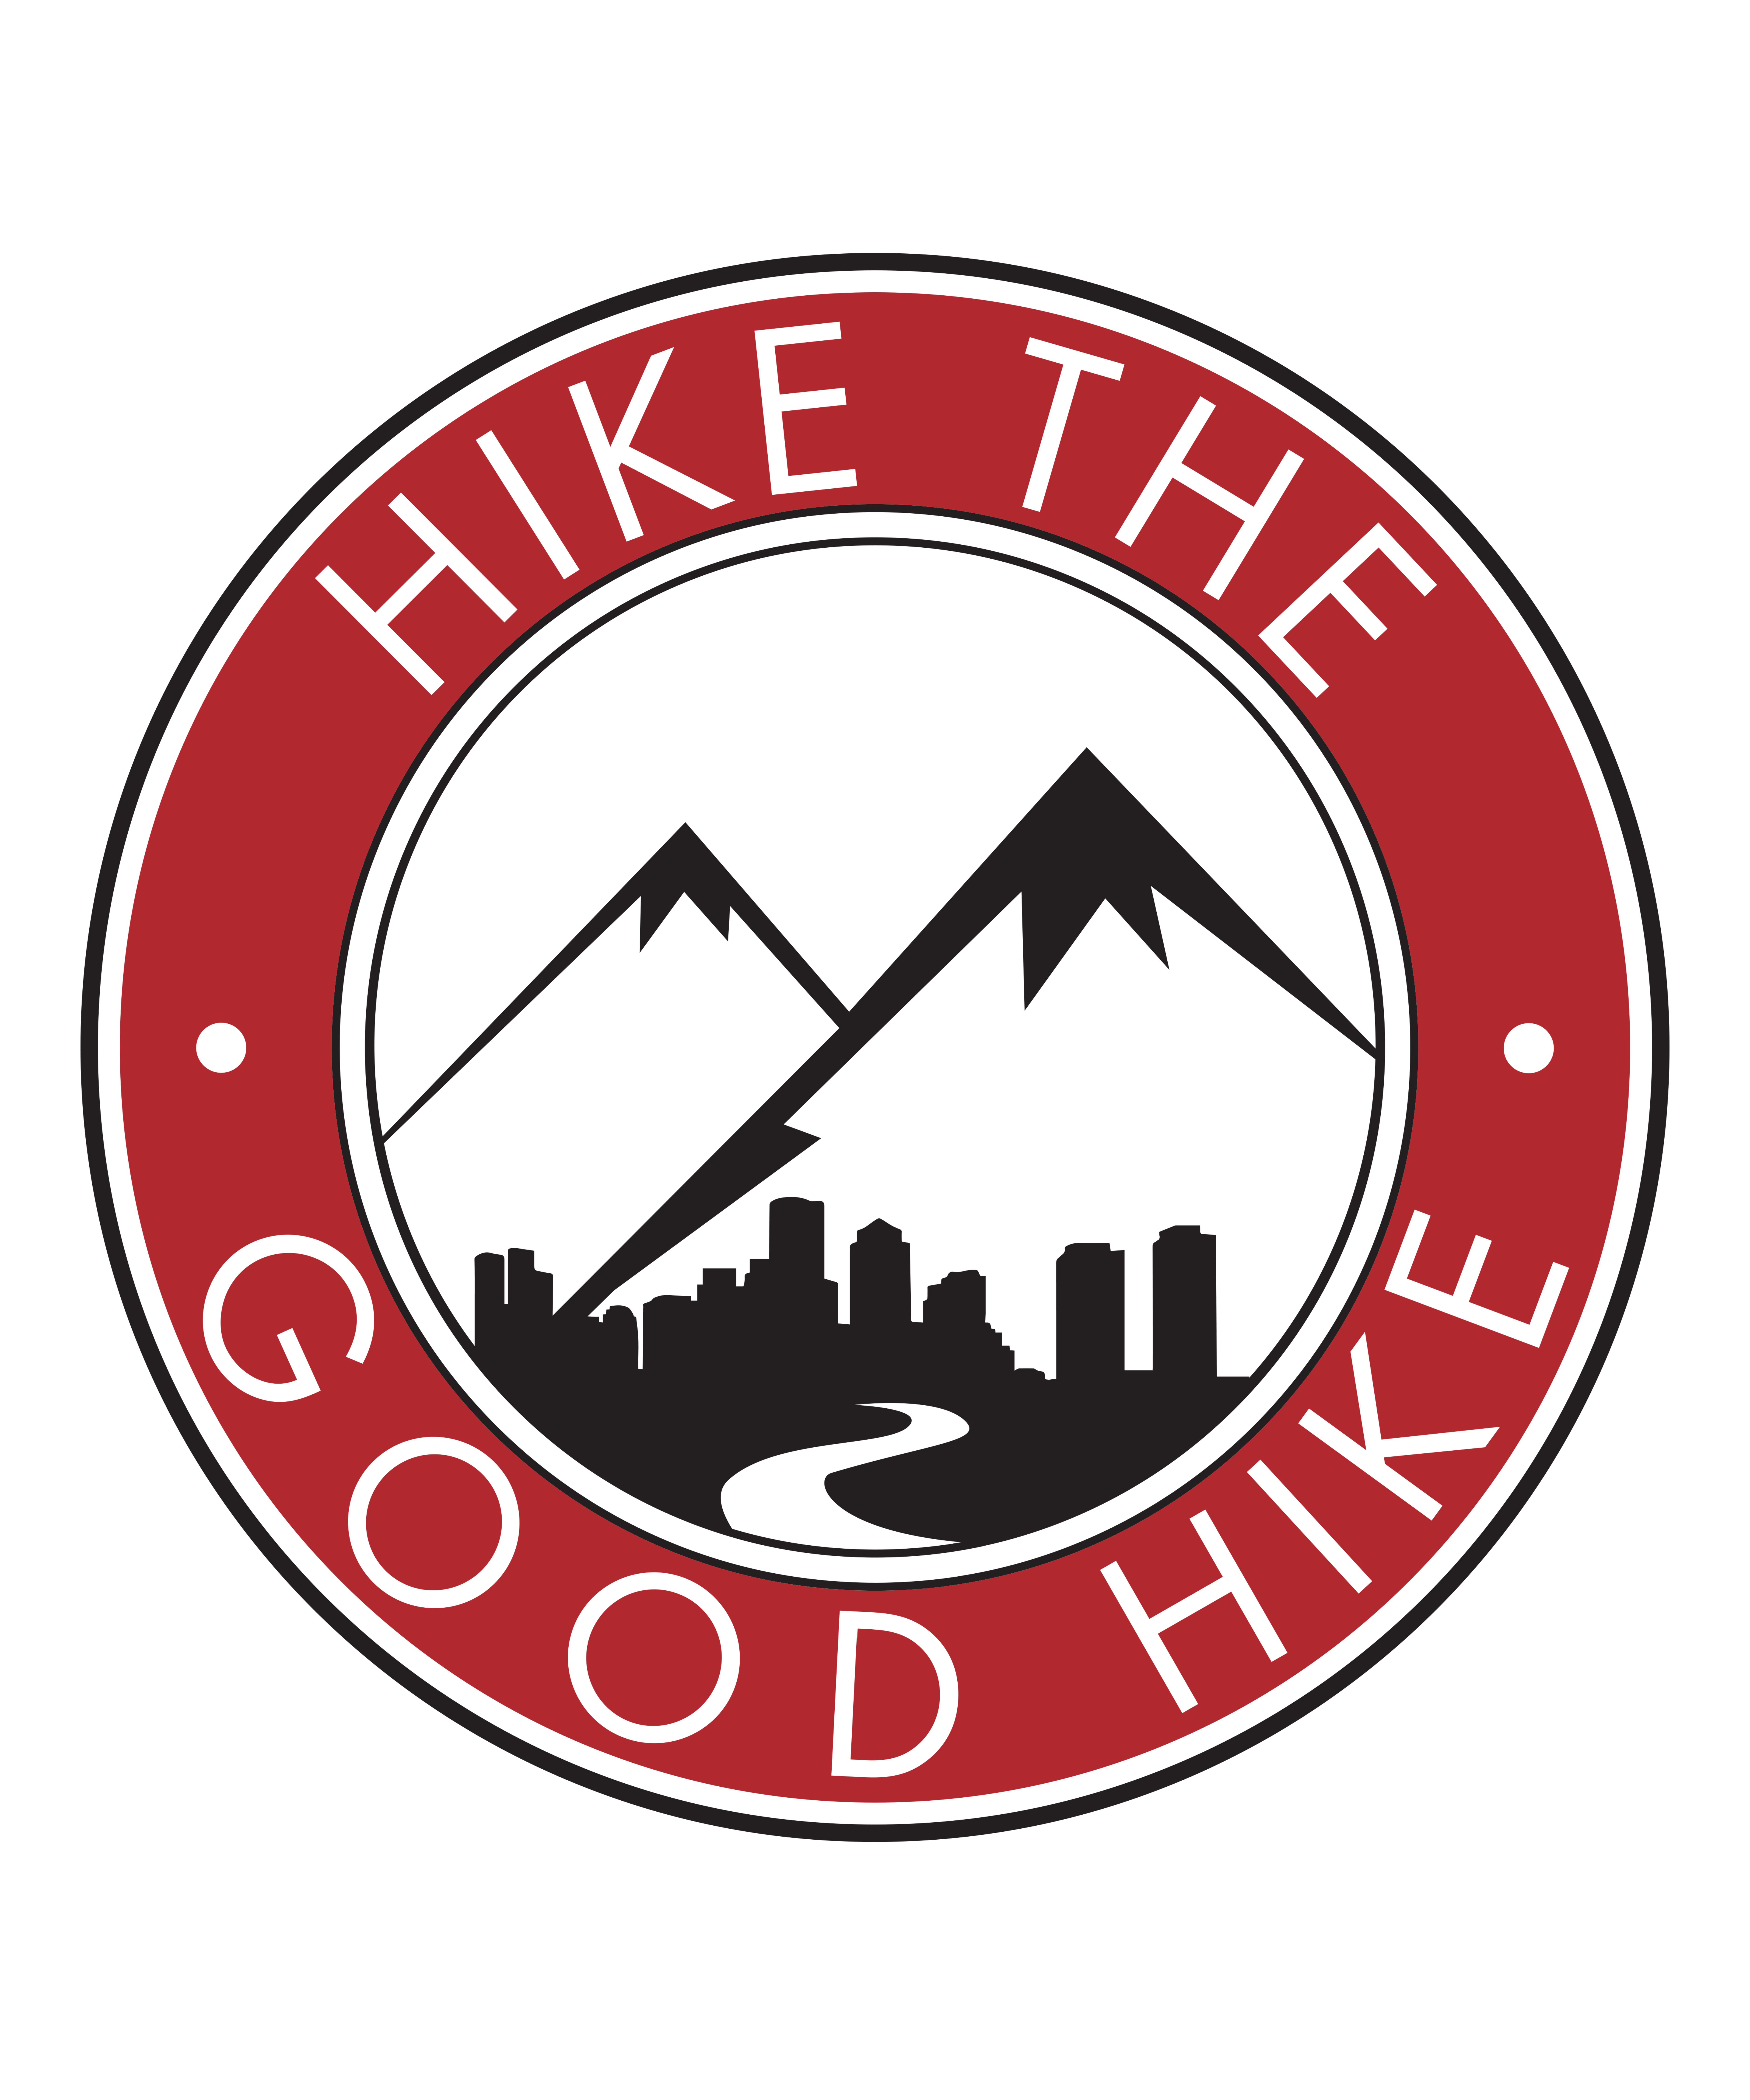 Learn more about Hike the Good Hike!